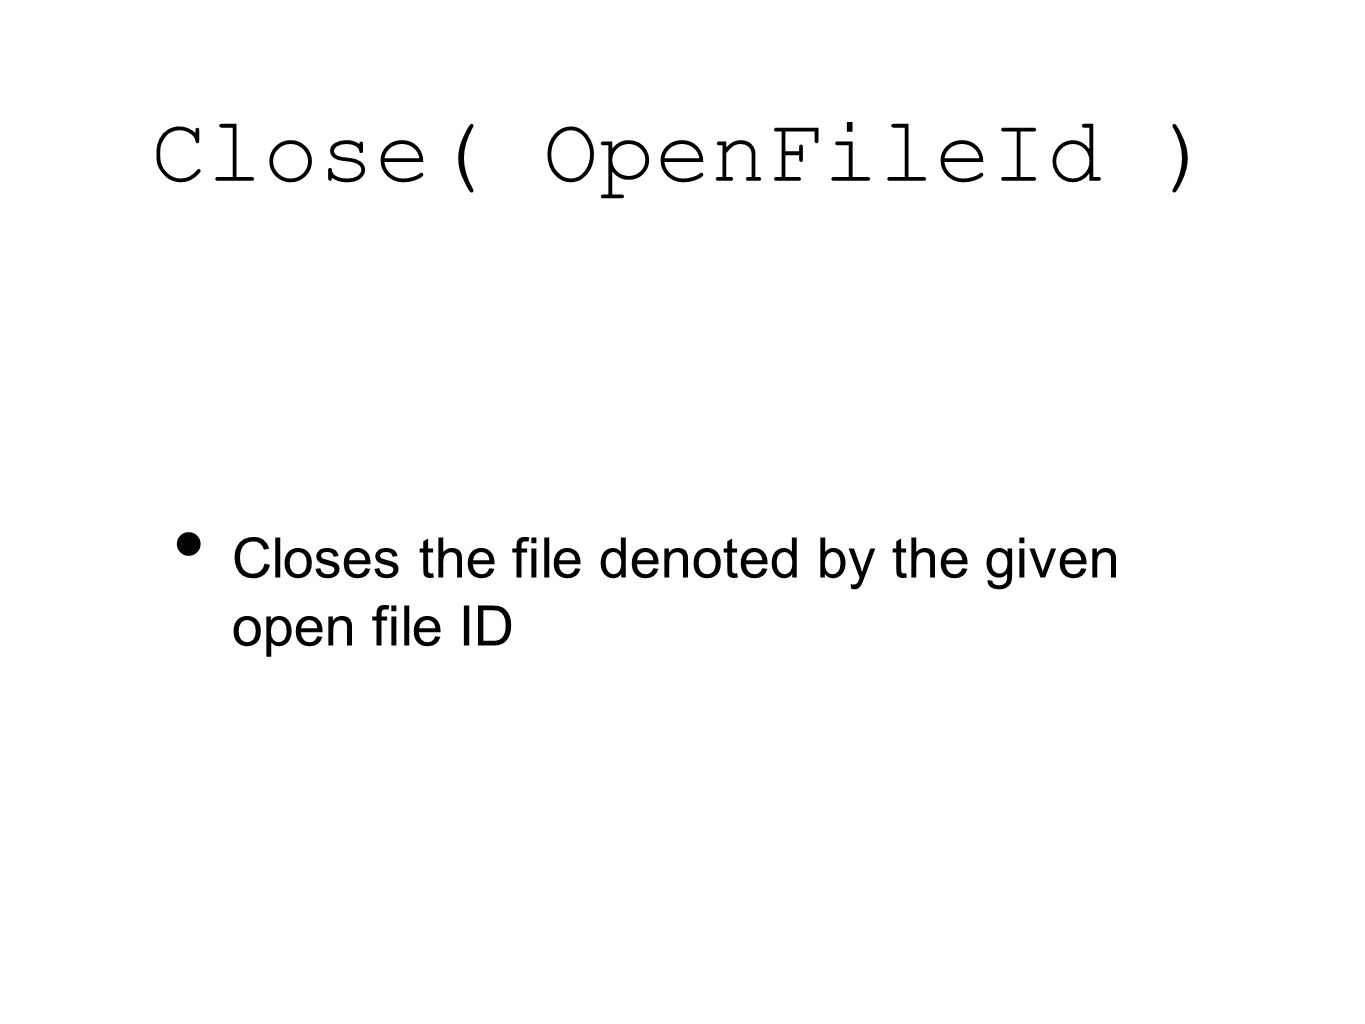 Close( OpenFileId ) Closes the file denoted by the given open file ID